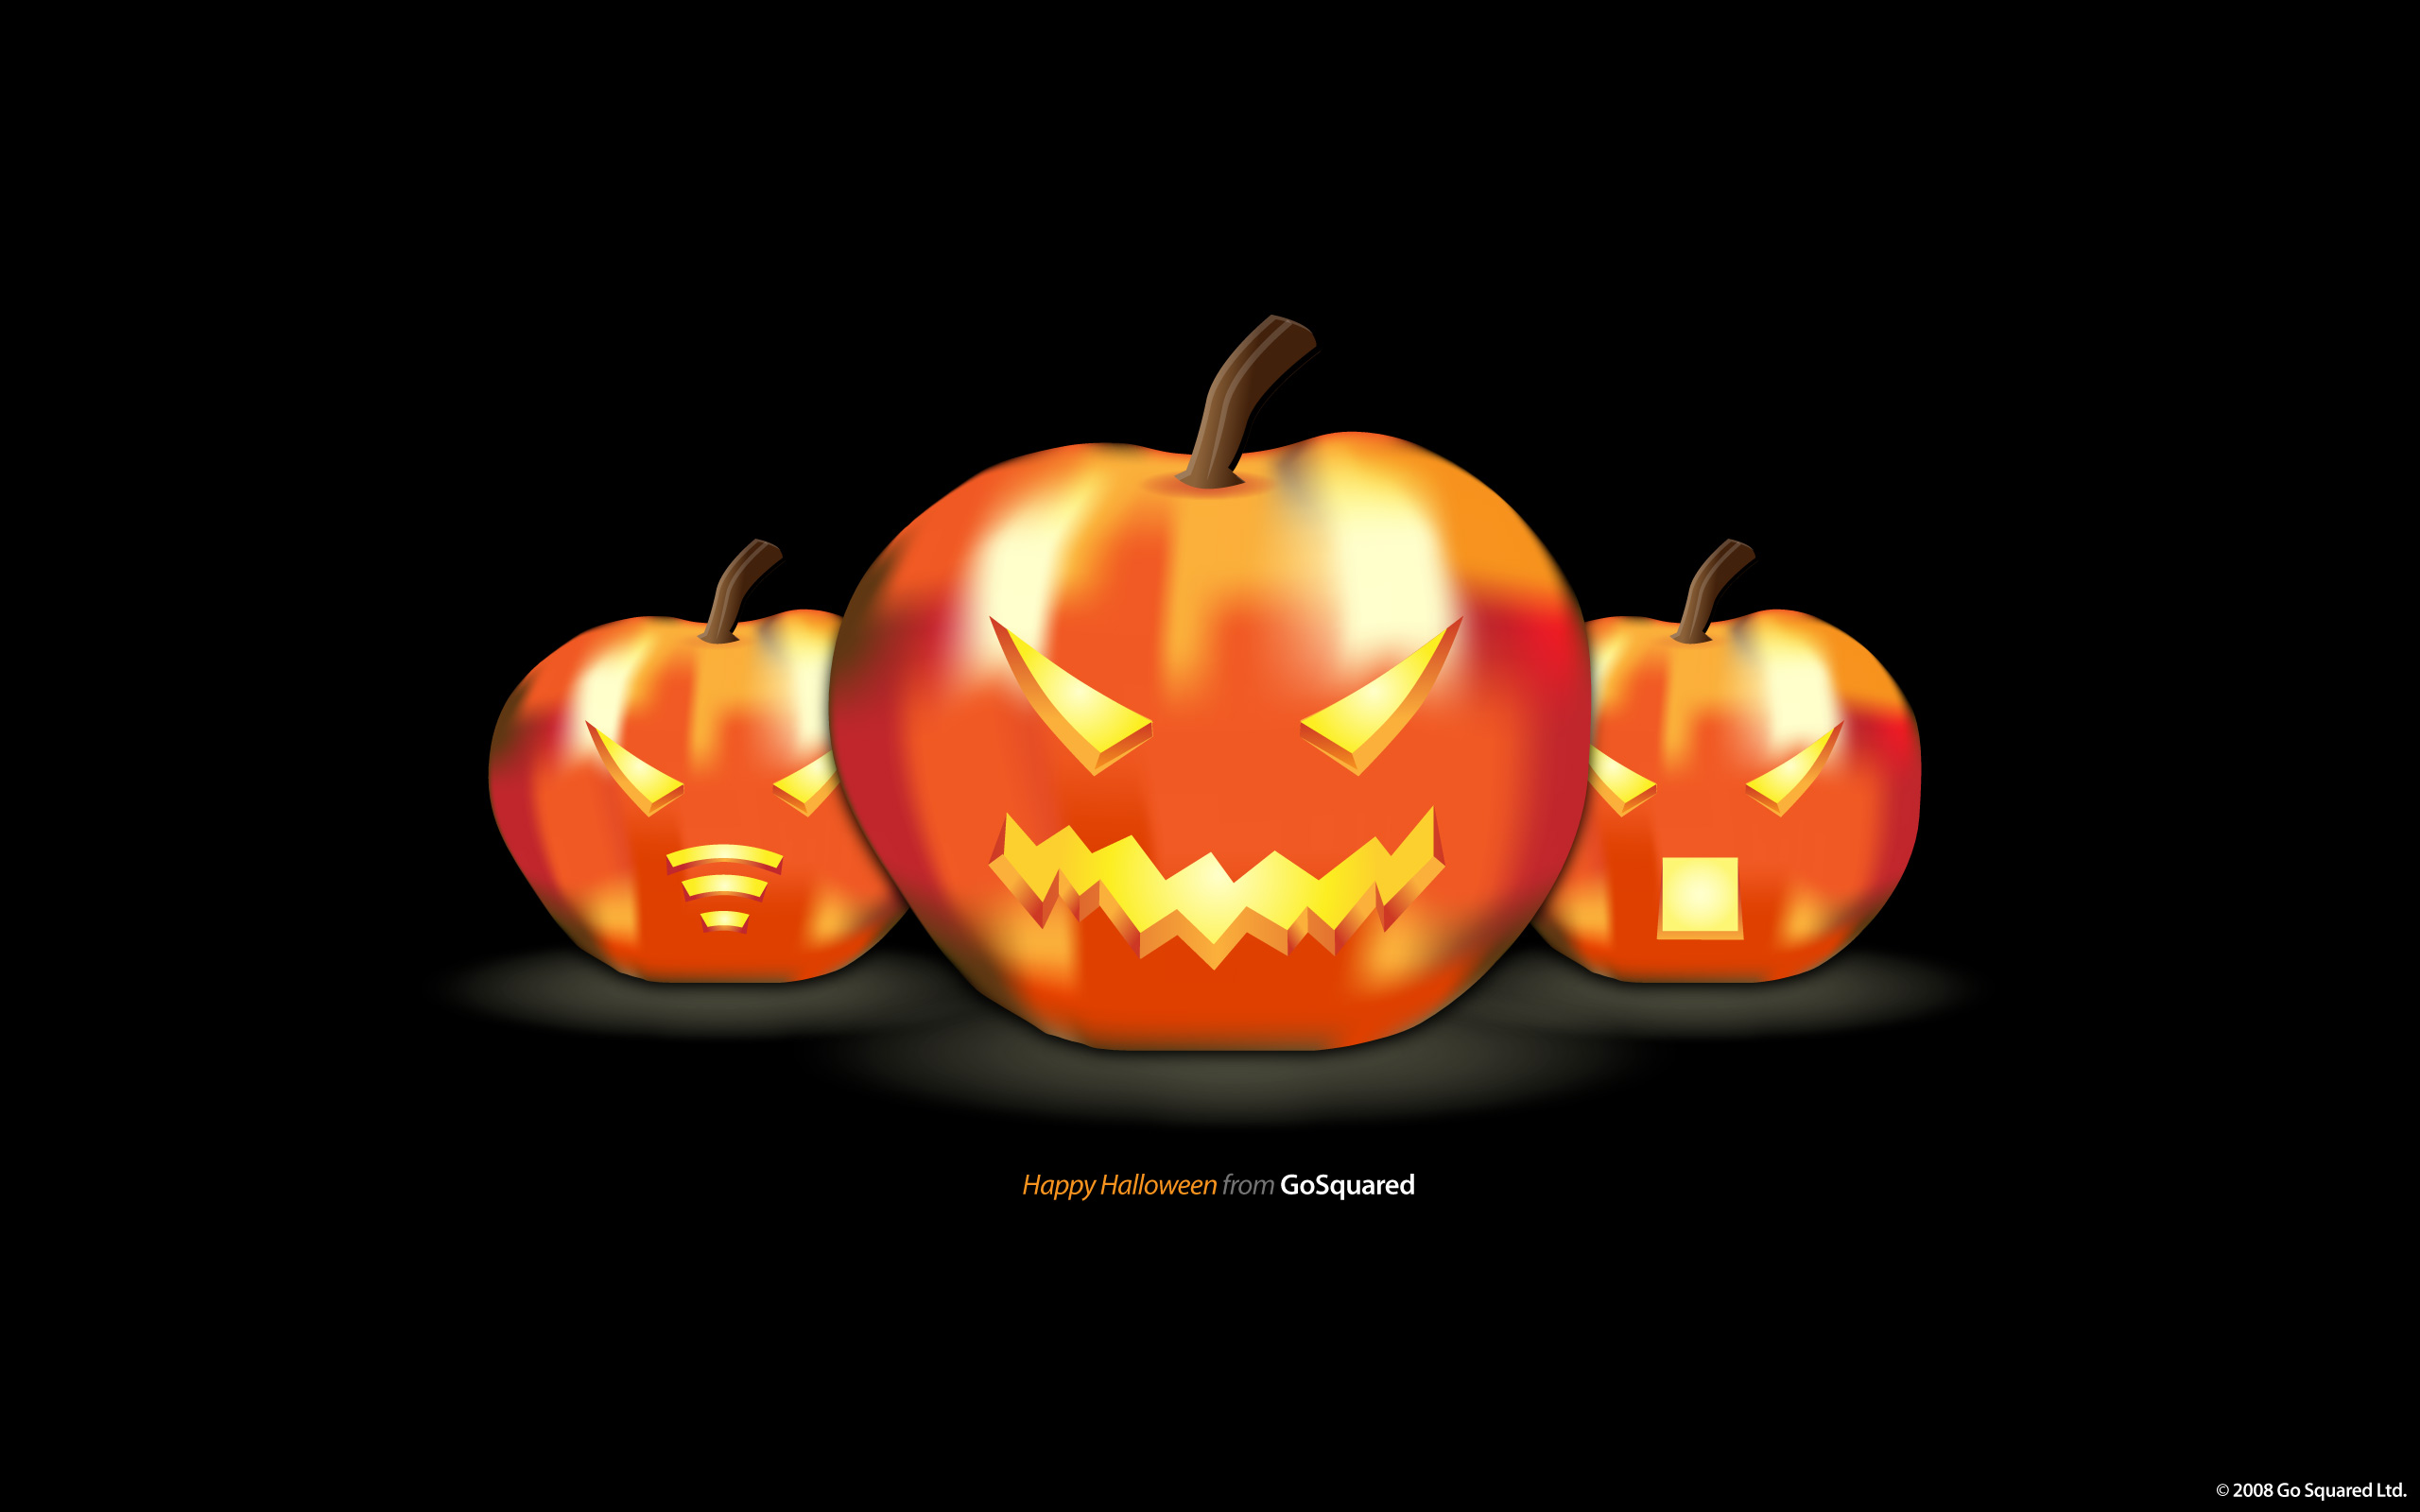 heres a wallpaper to say happy halloween from gosquared - Pictures That Say Happy Halloween